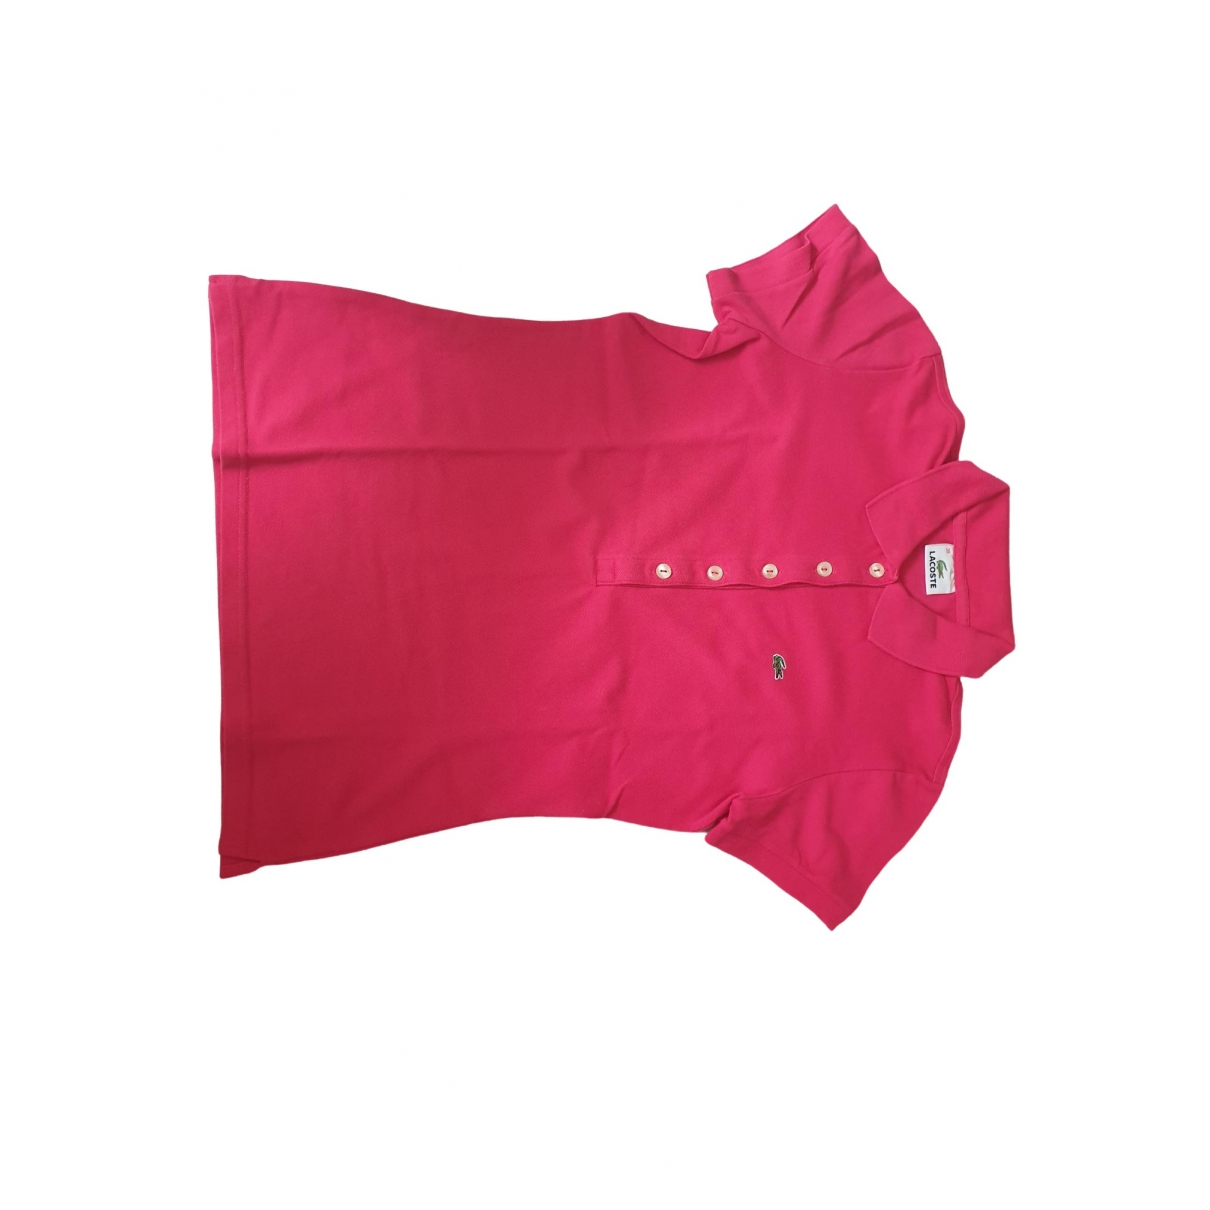 Lacoste \N Pink Cotton  top for Women 38 IT